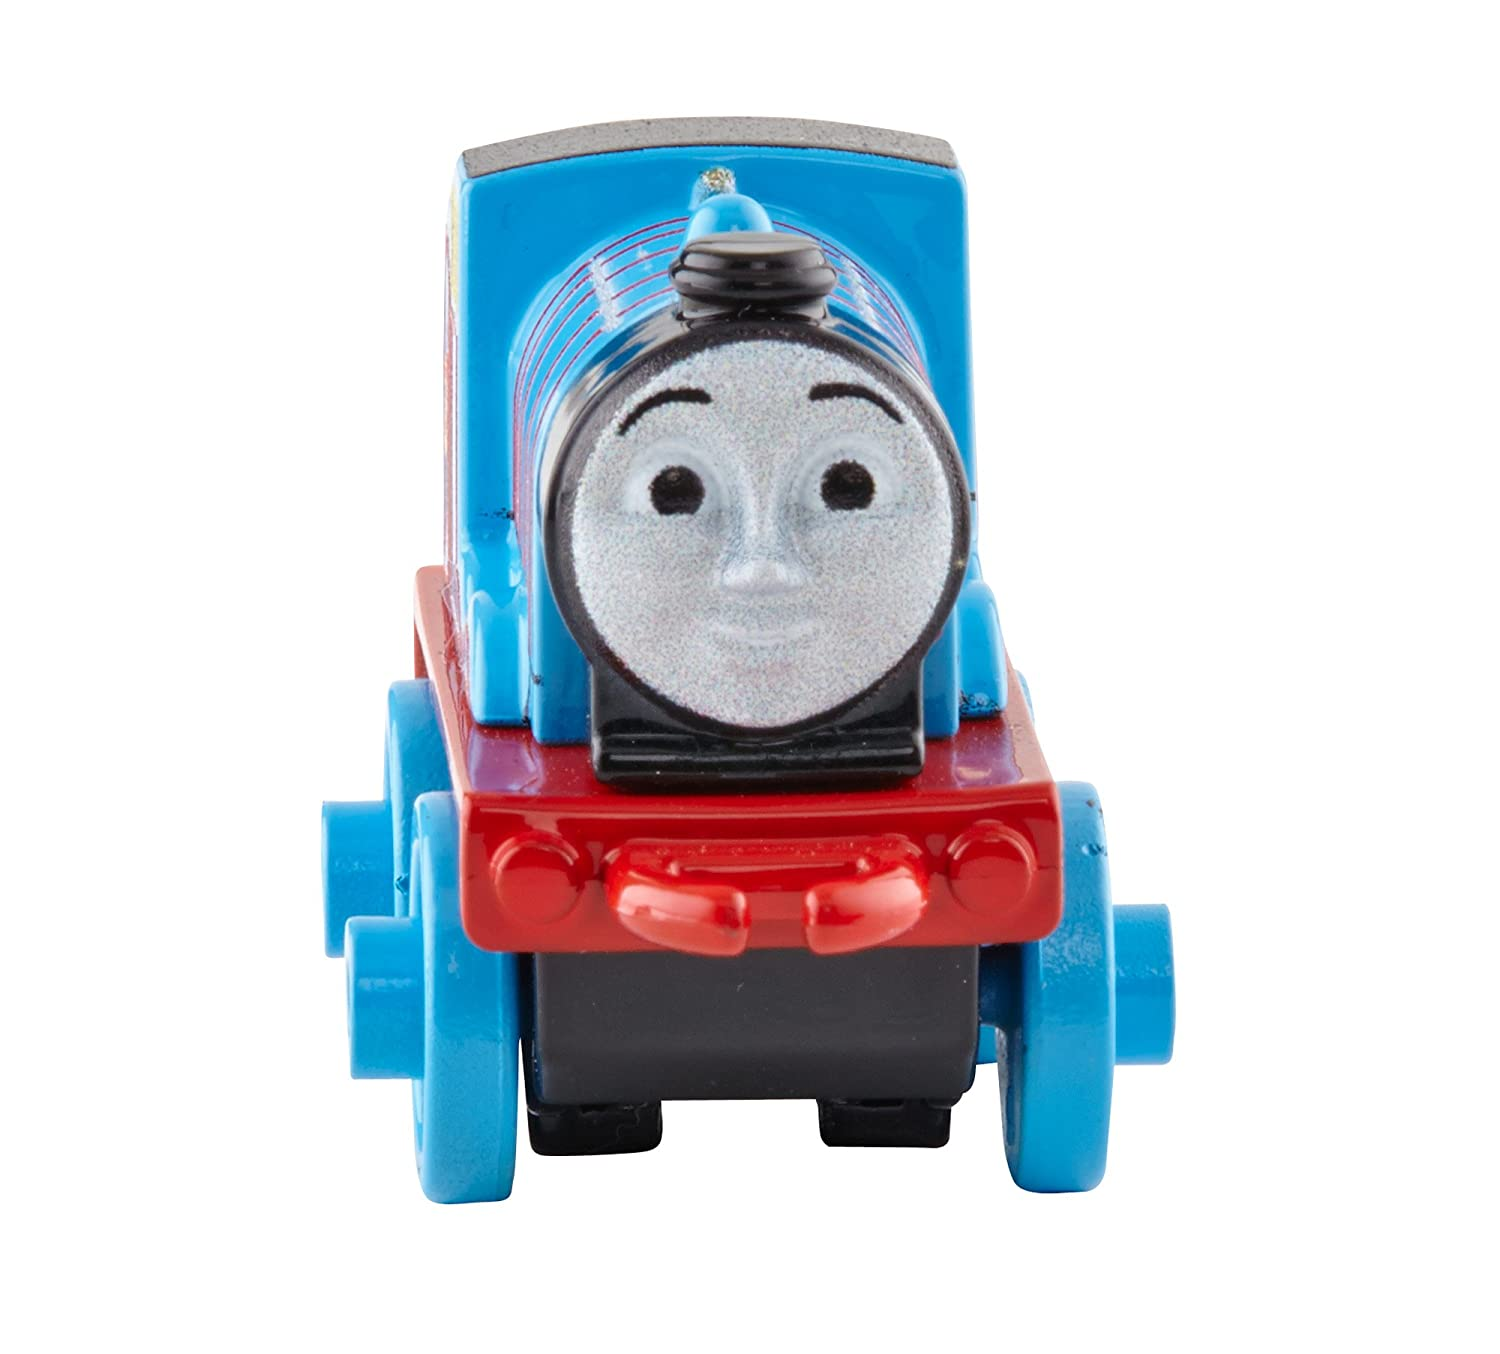 Amazon.com: Thomas the Train Minis - Edward: Toys & Games